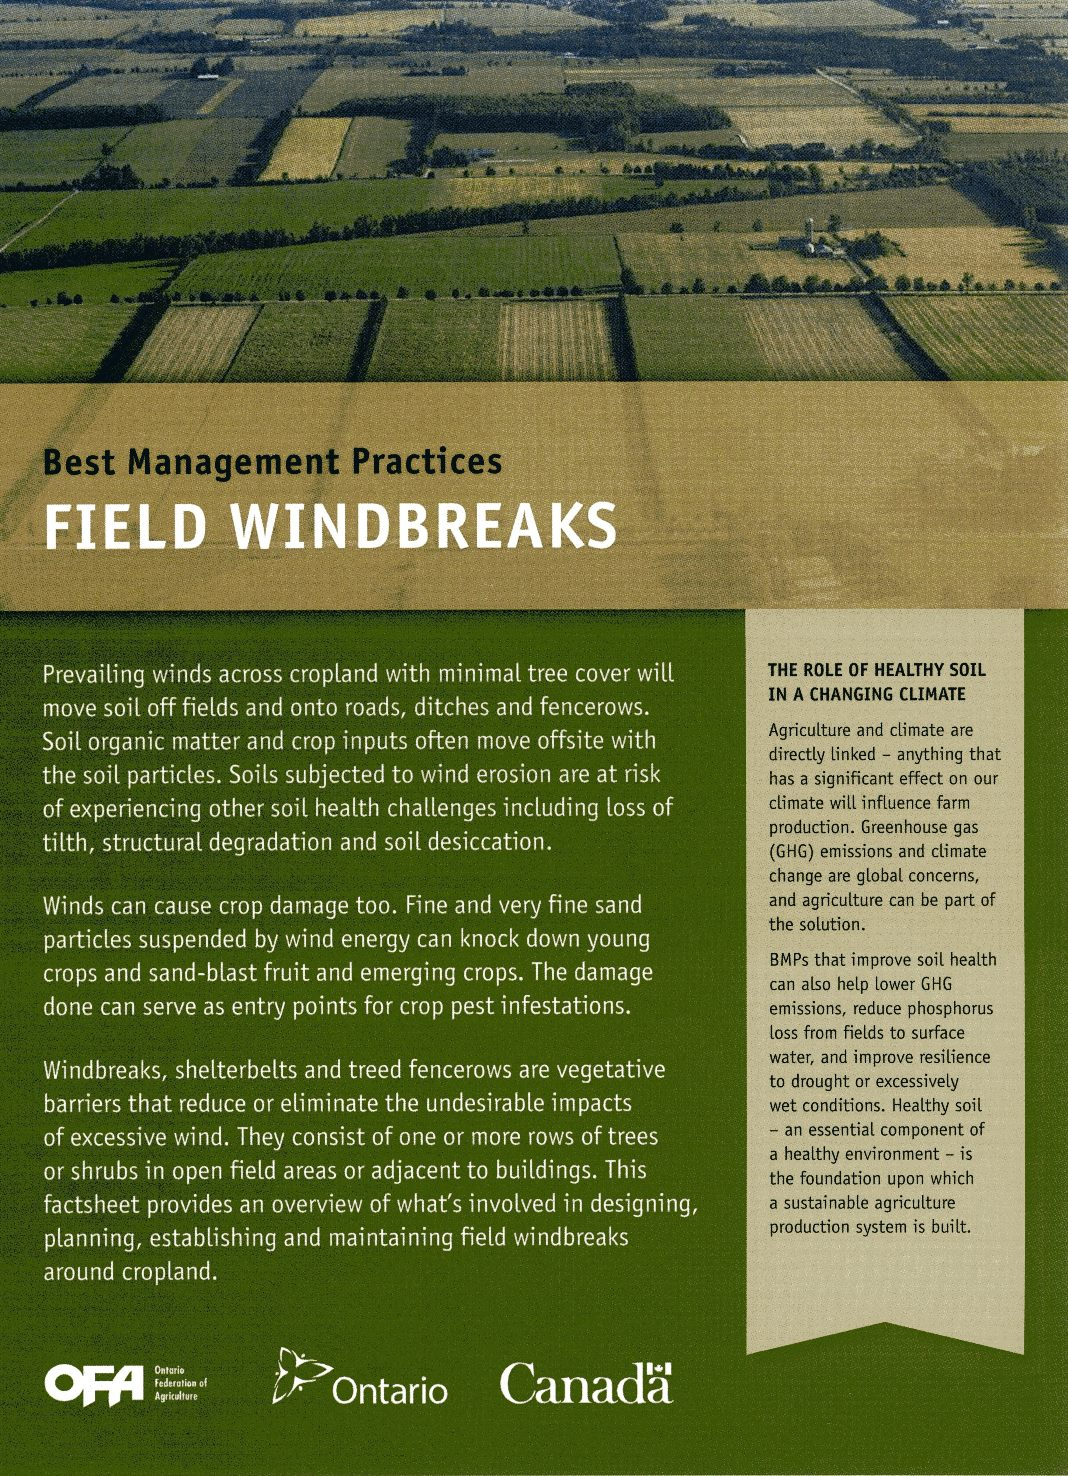 an overview of the soil and land management Research of the soil physics and land management group research in the chair group soil physics and land management (slm) addresses soil physical and hydrological processes at different temporal and spatial scales, and their central role in sustainable land and water management.